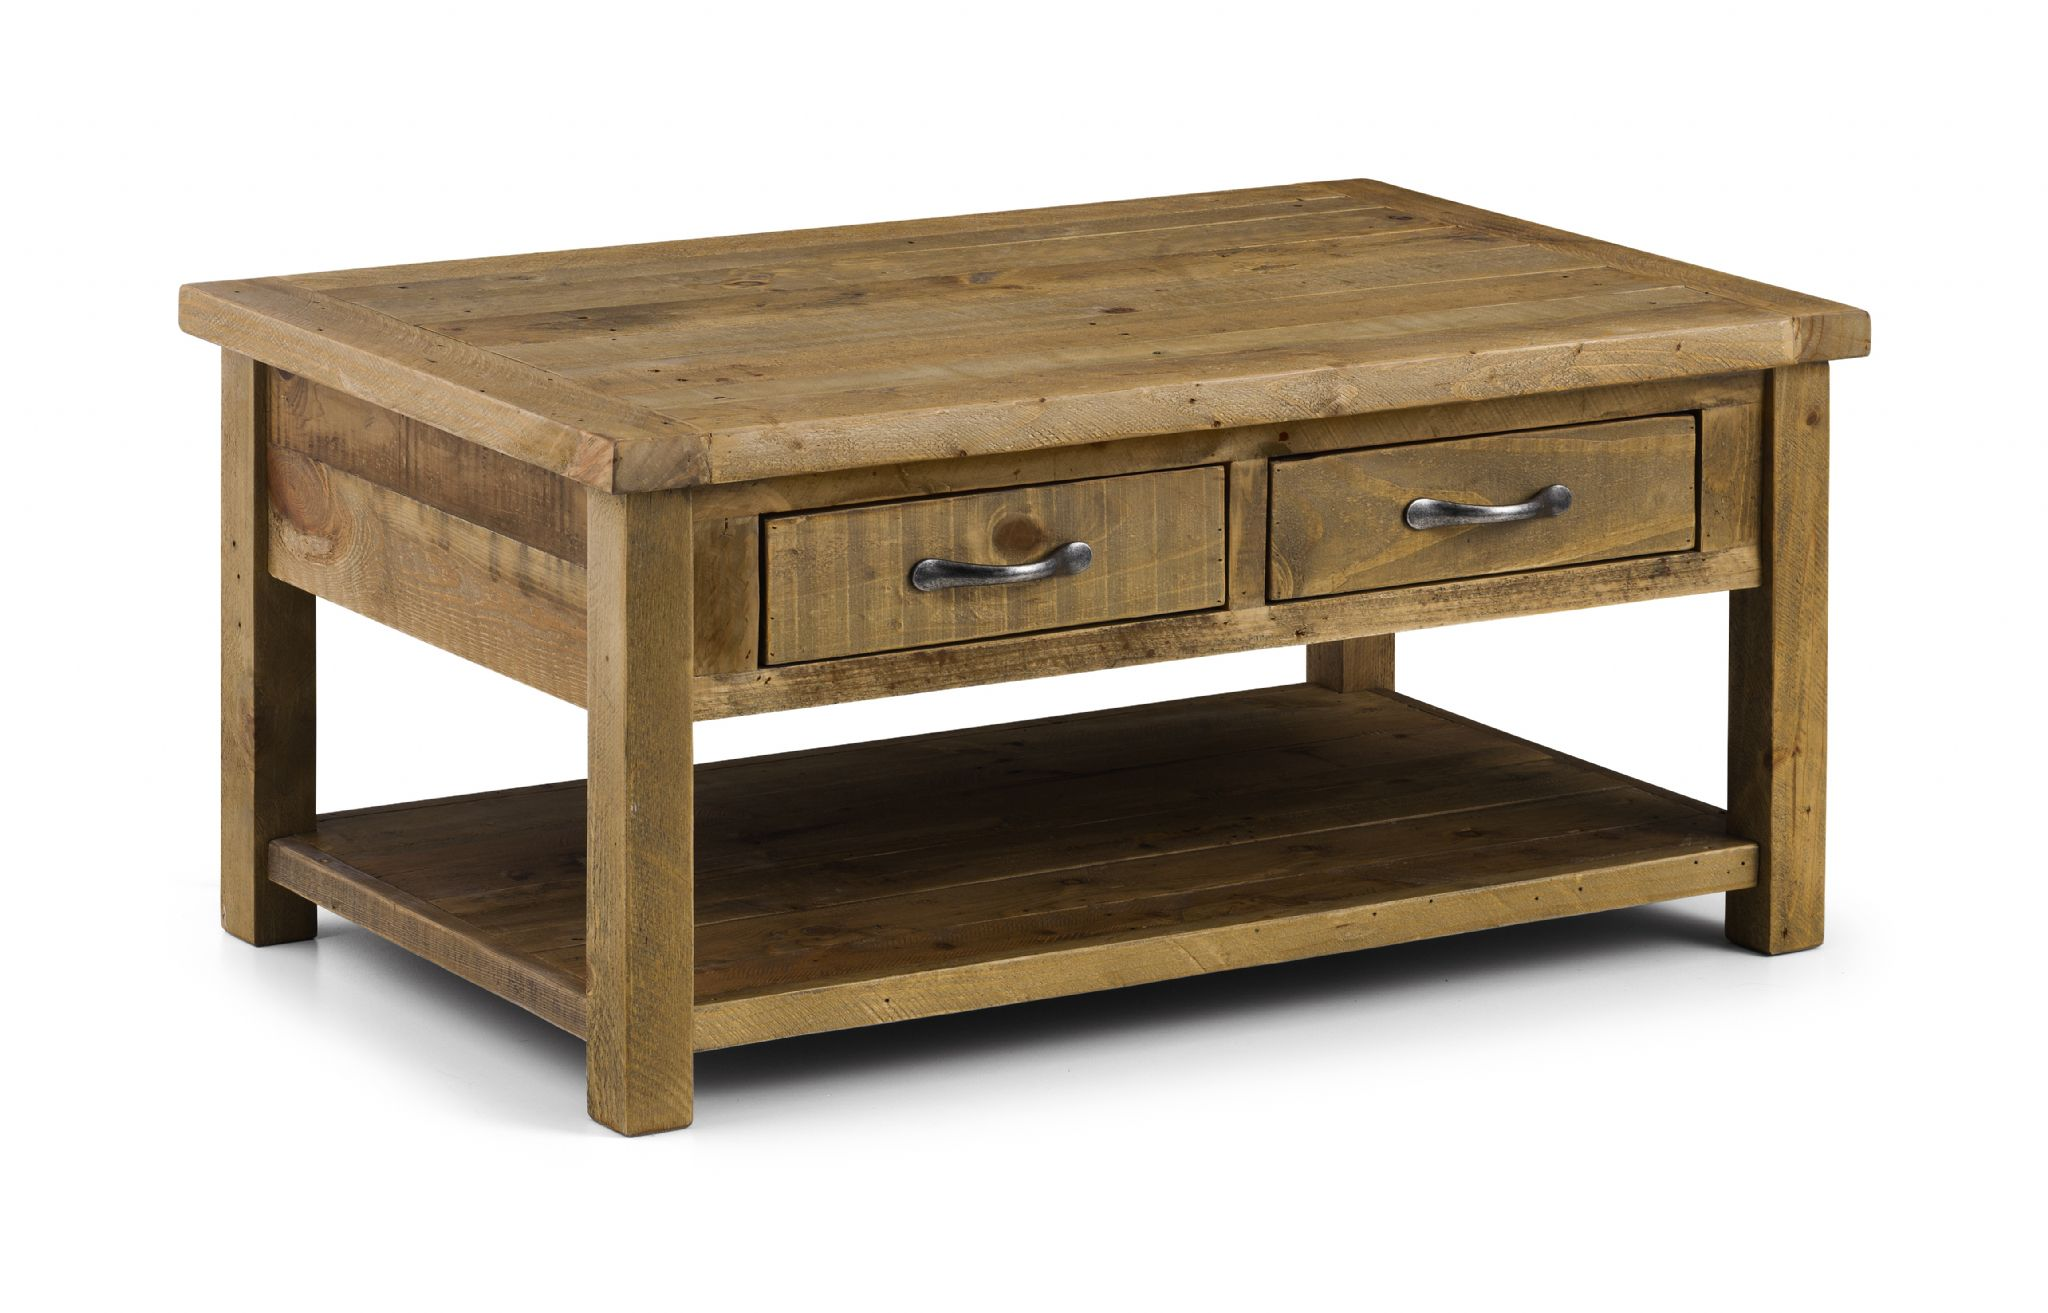 Cordoba Solid Reclaimed Pine Coffee Table With 2 Drawers Jb36